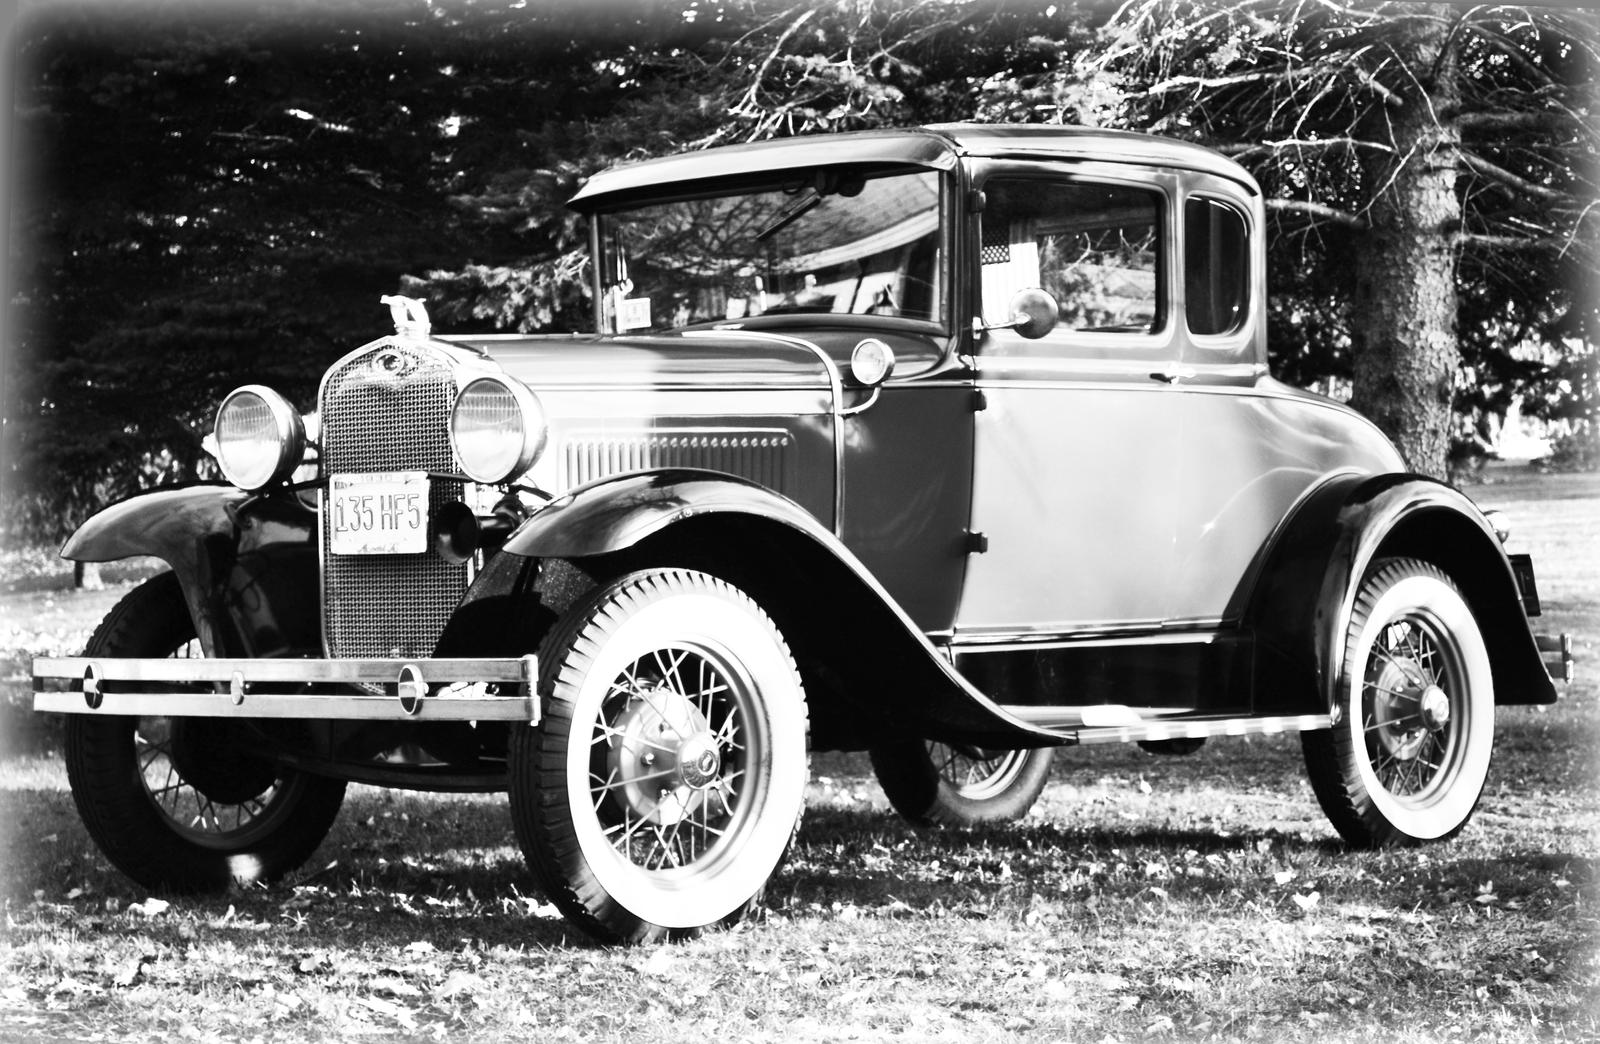 1930 Ford Model A Length In Mm | Upcomingcarshq.com